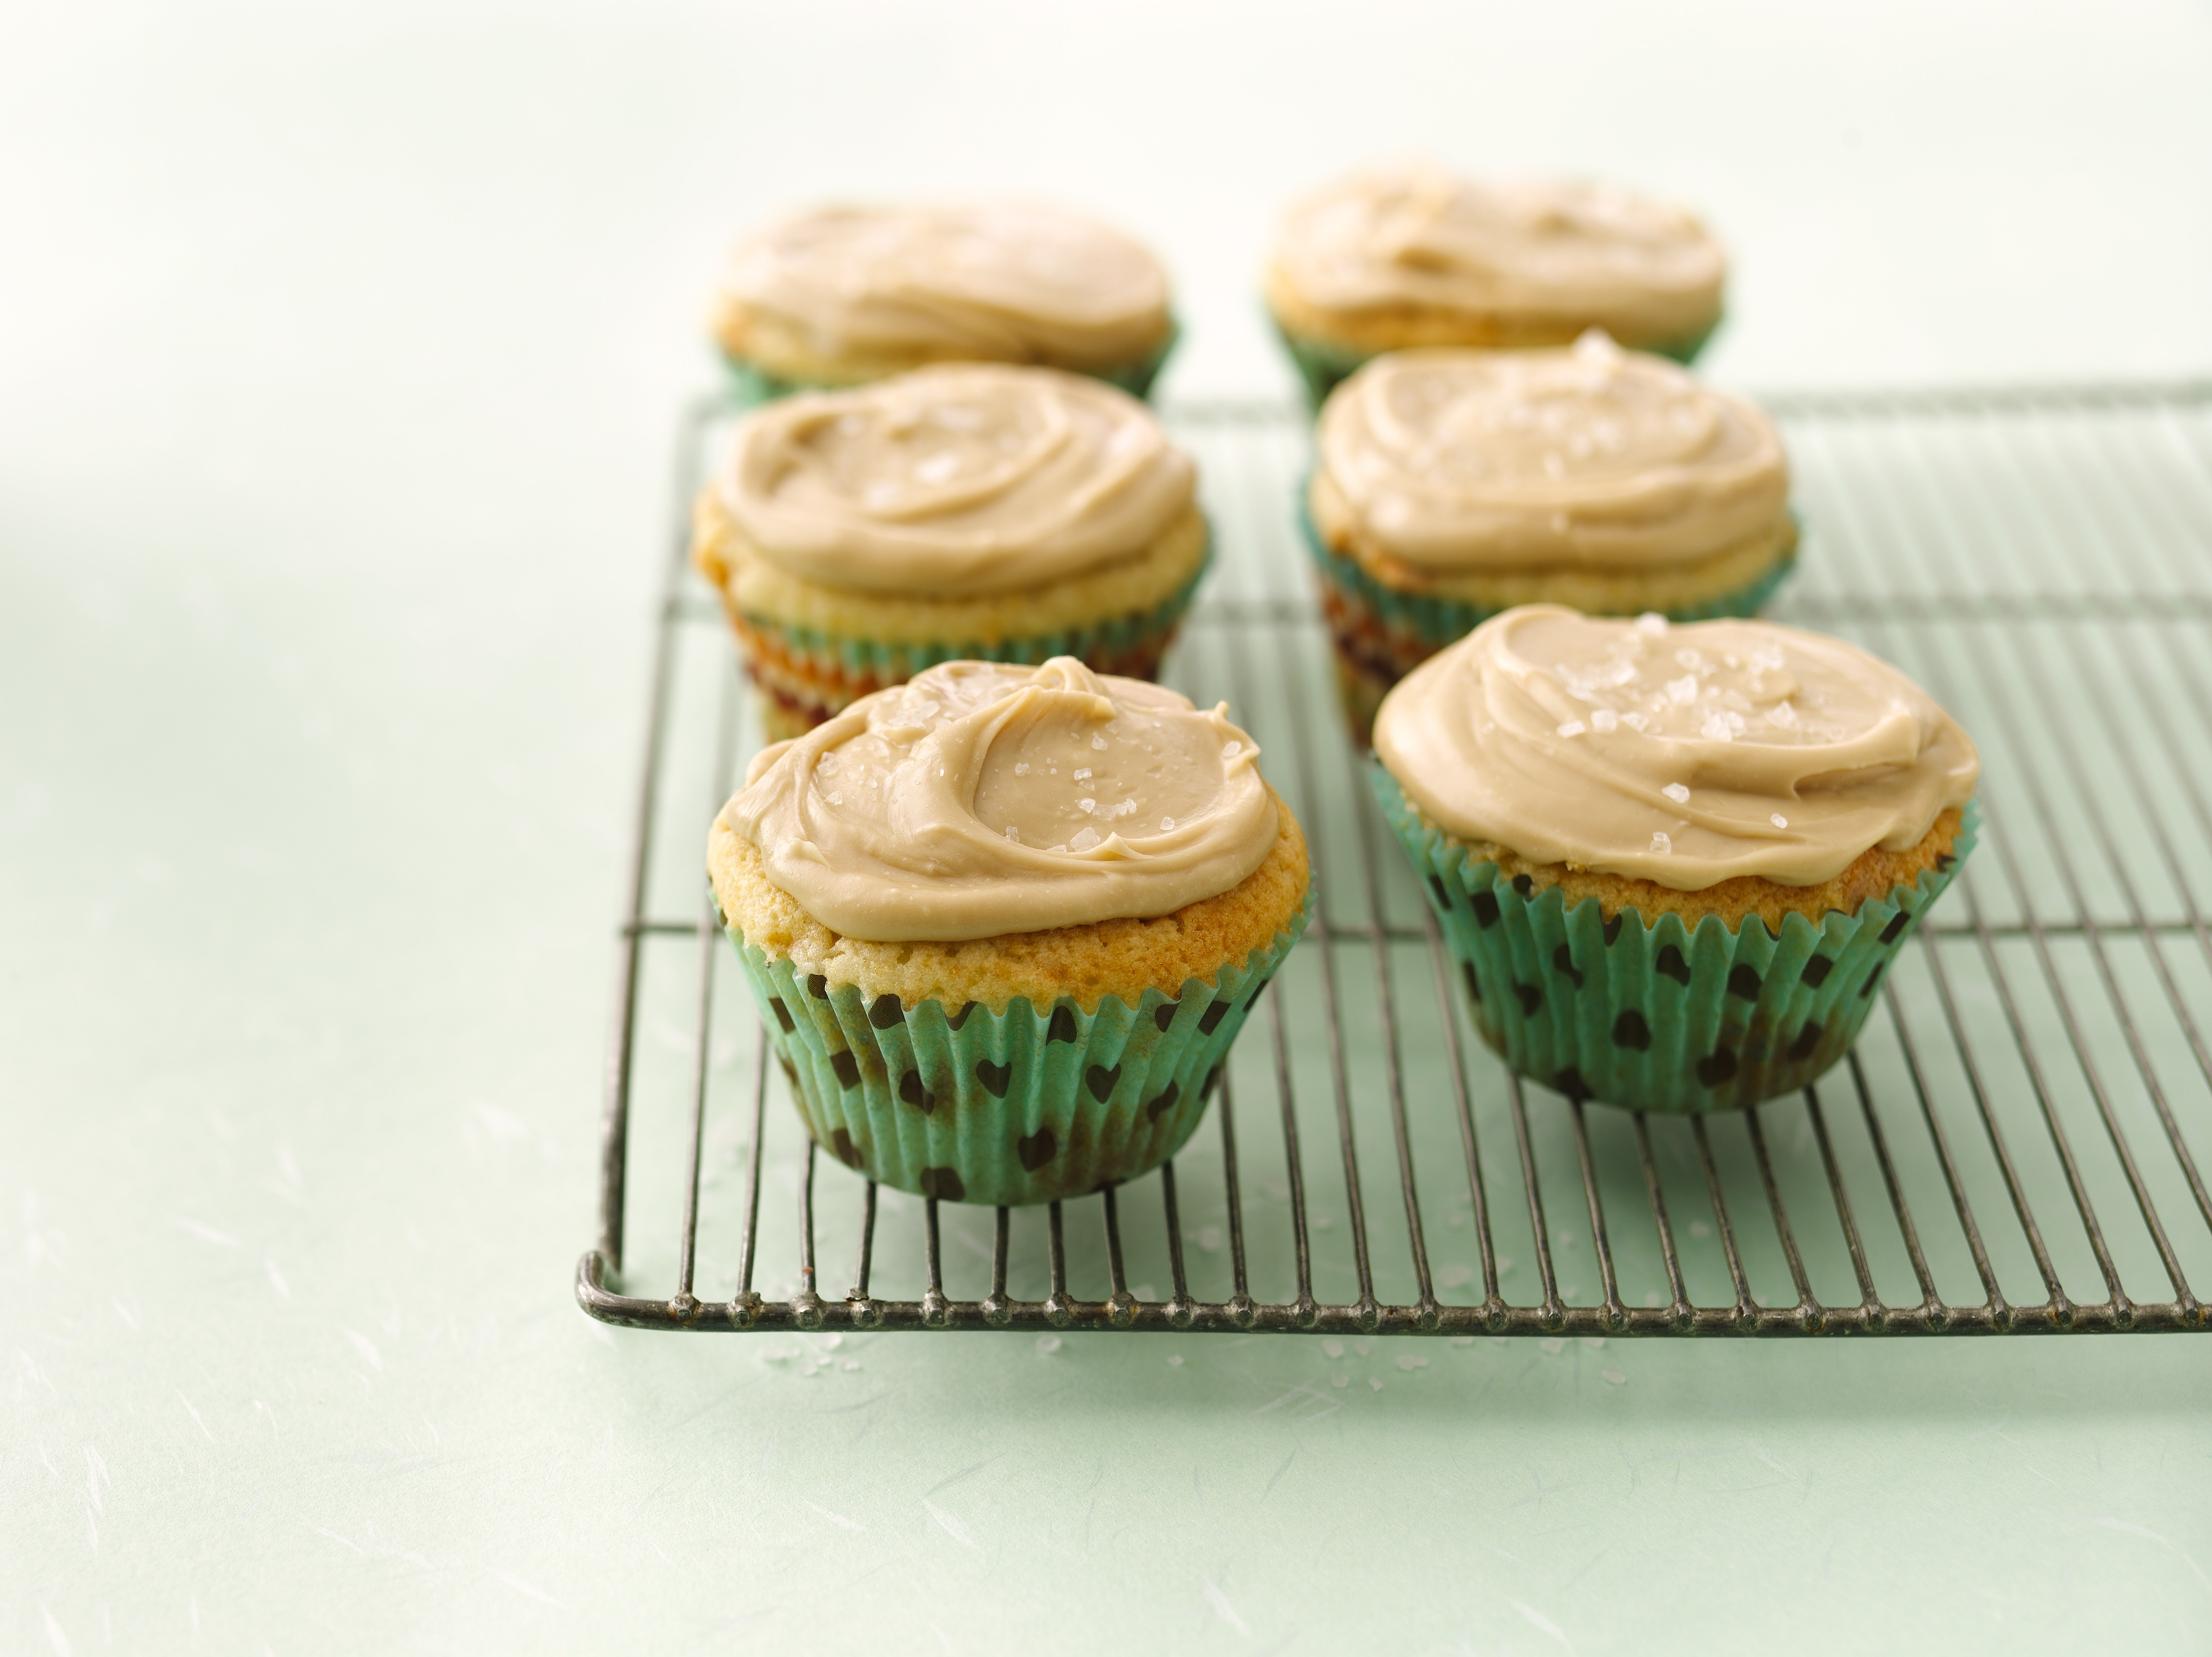 Butterscotch Cupcake Recipe with Caramel Frosting